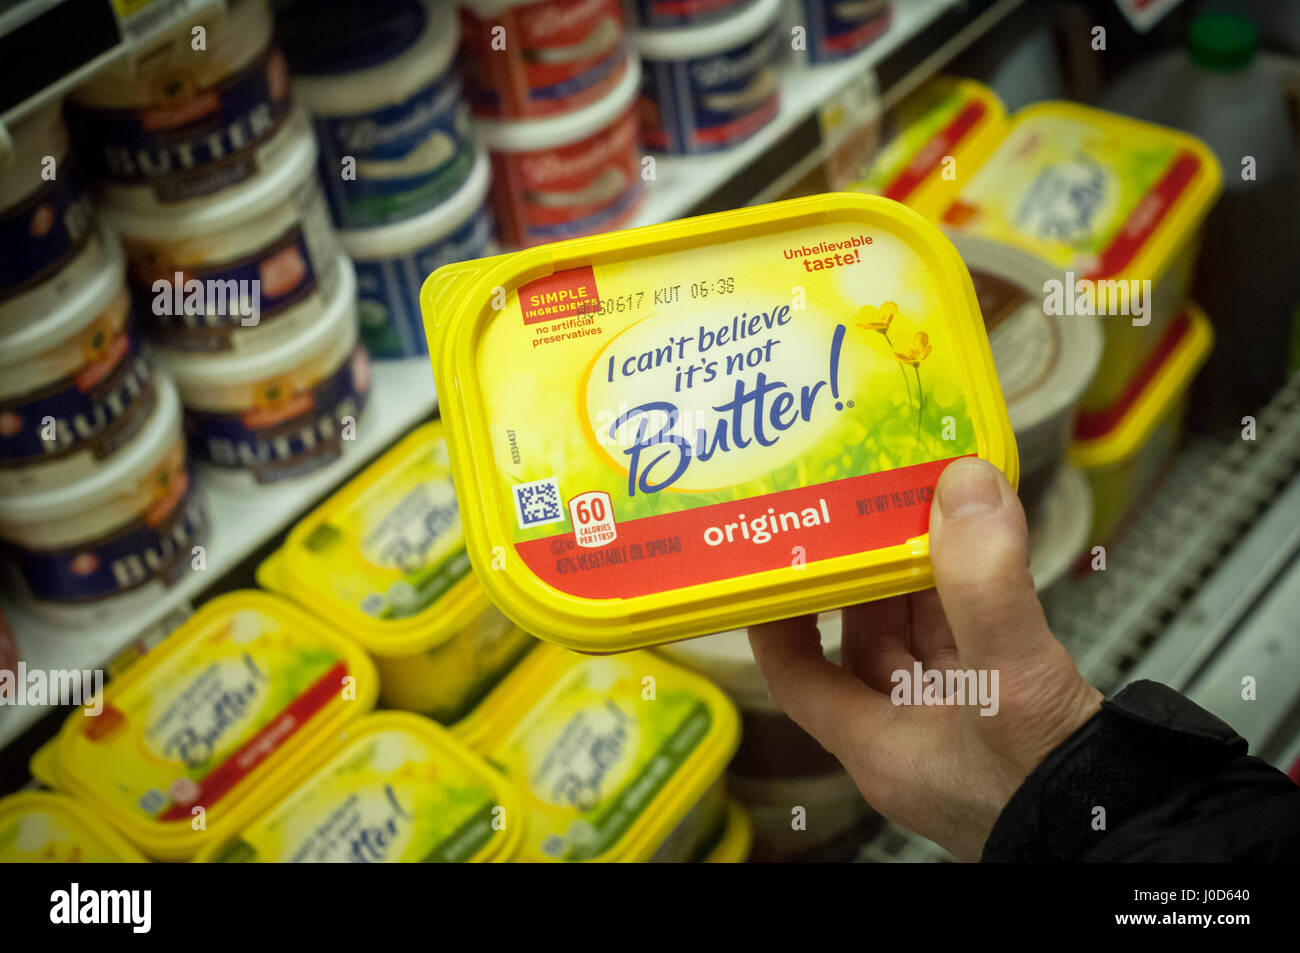 tubs-of-i-cant-believe-its-not-butter-an